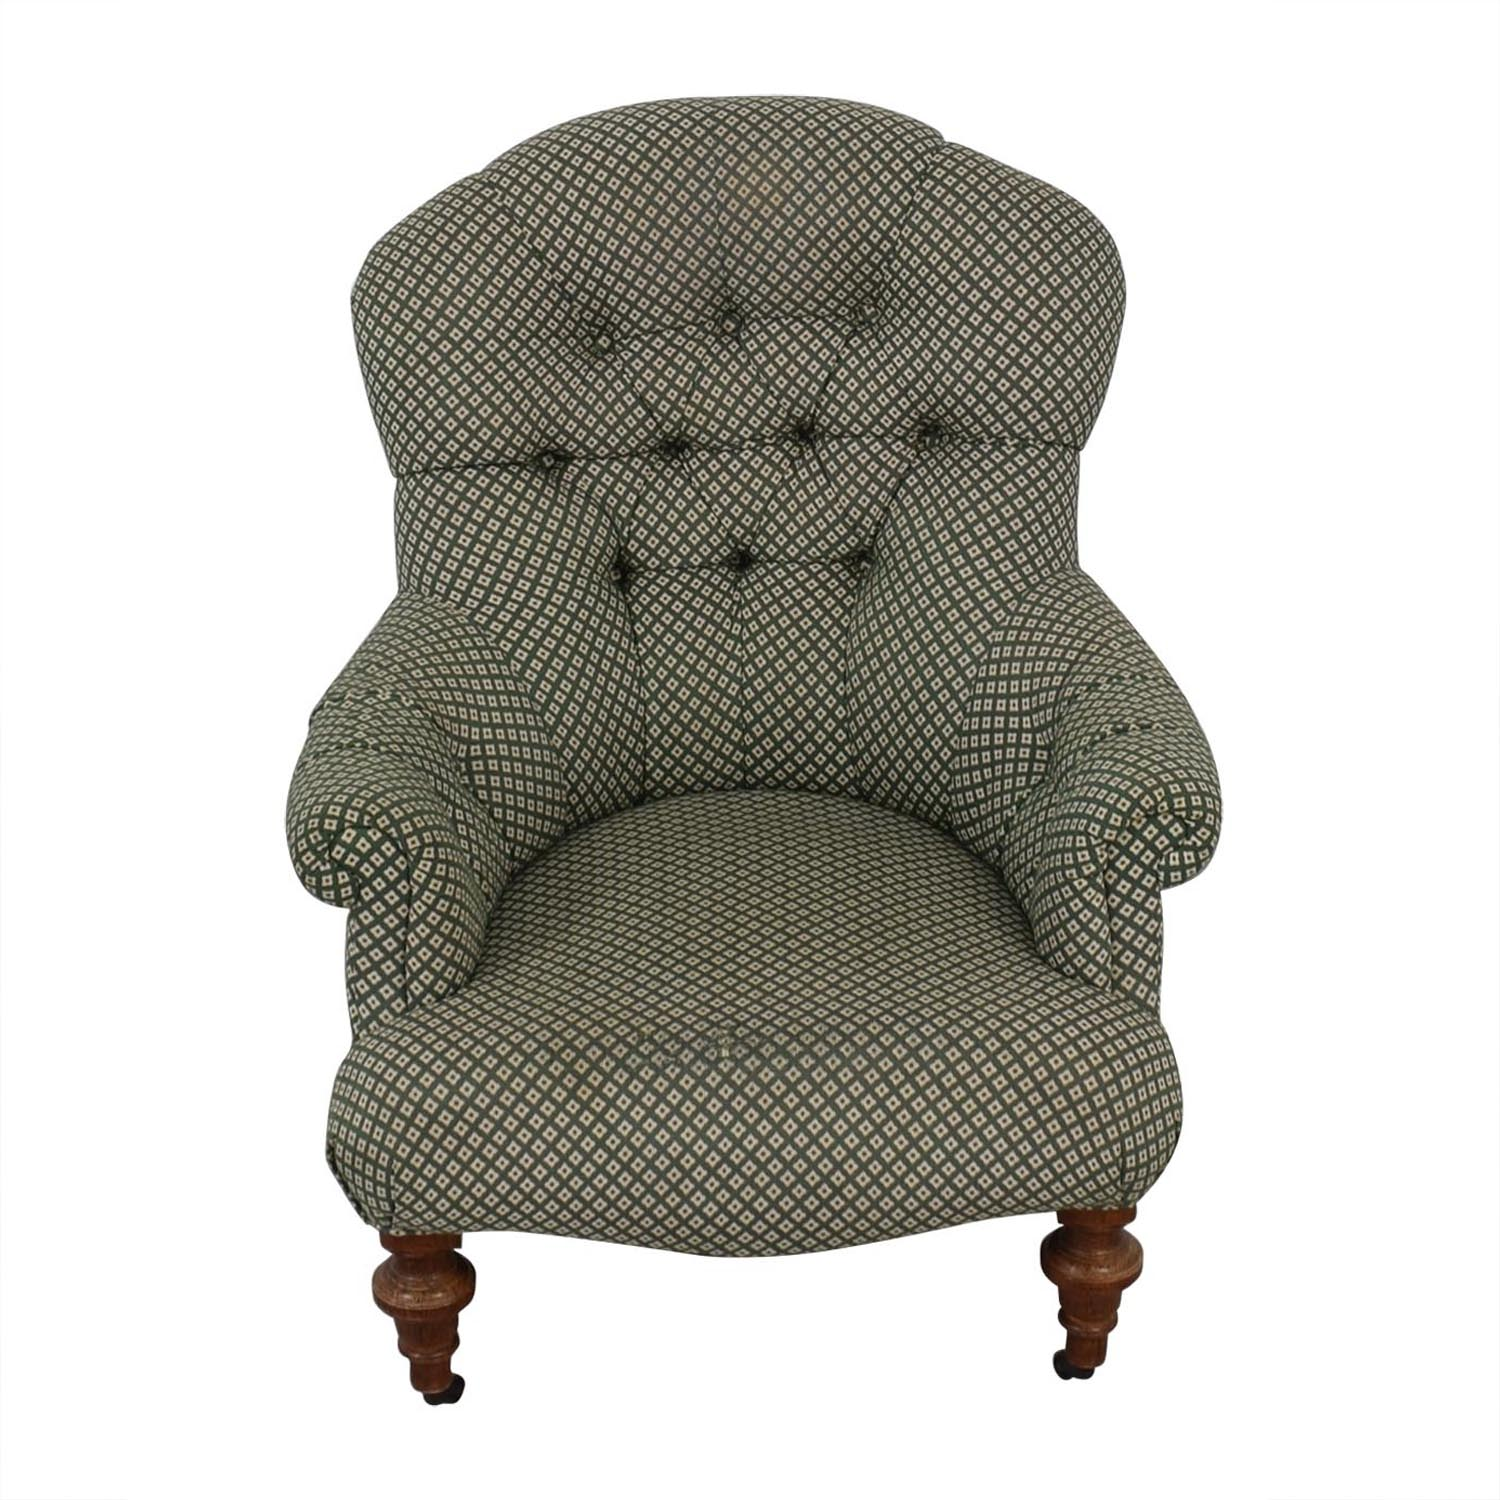 Tufted High Back Chair 70 Off Green And White Tufted High Back Armchair Chairs